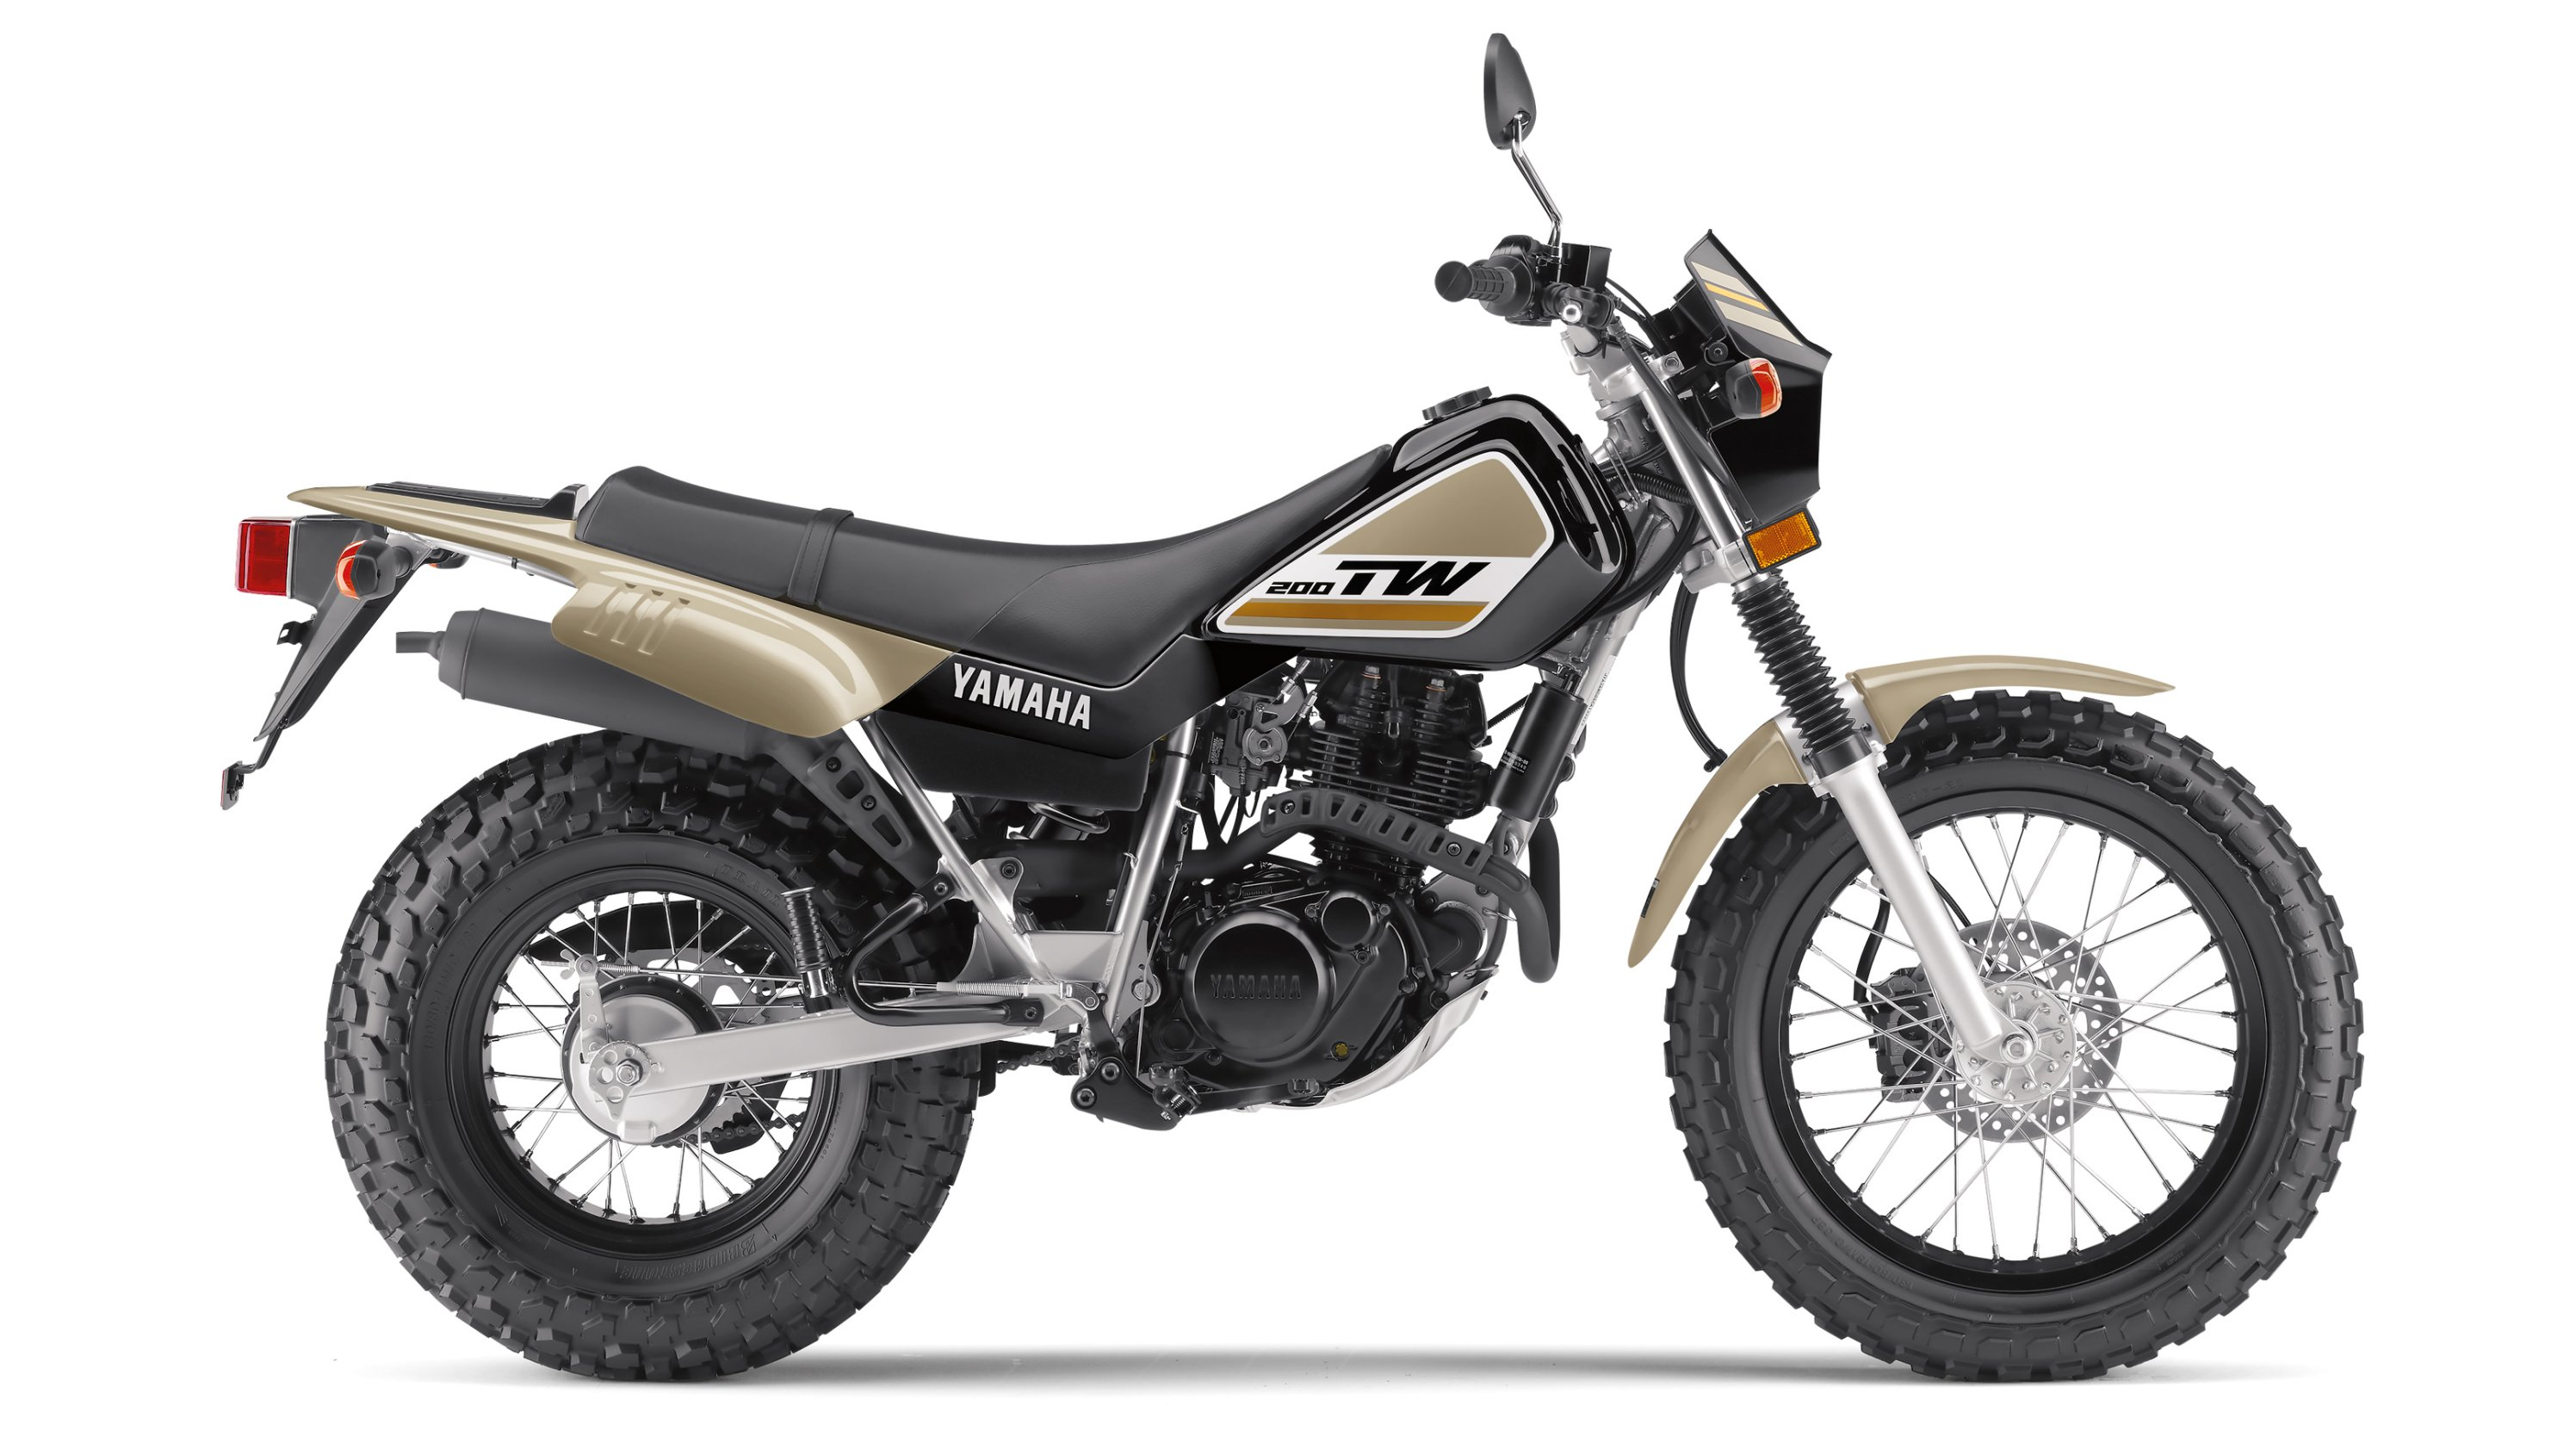 Yamaha tw200 photo - 4